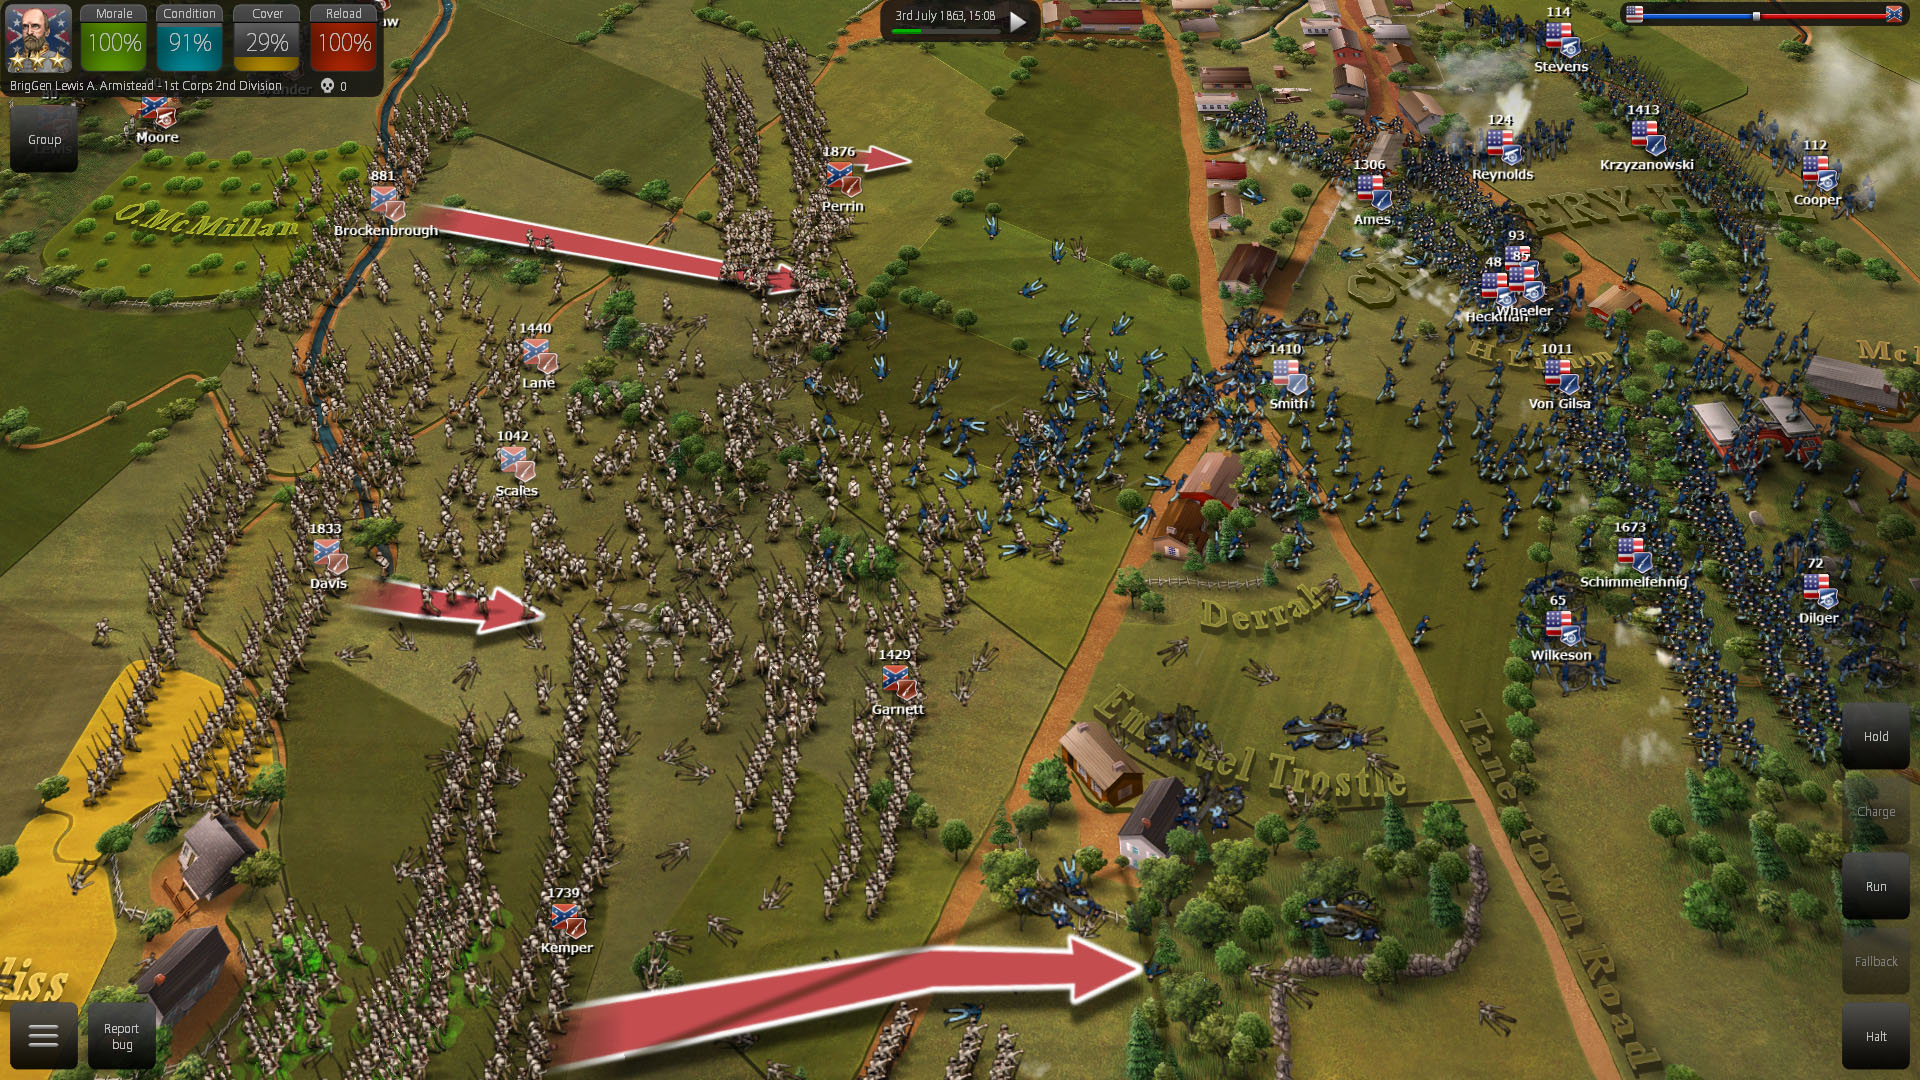 In this patch, the battles are more realistic visually and in gameplay due to improved melee mechanics and combat balances.